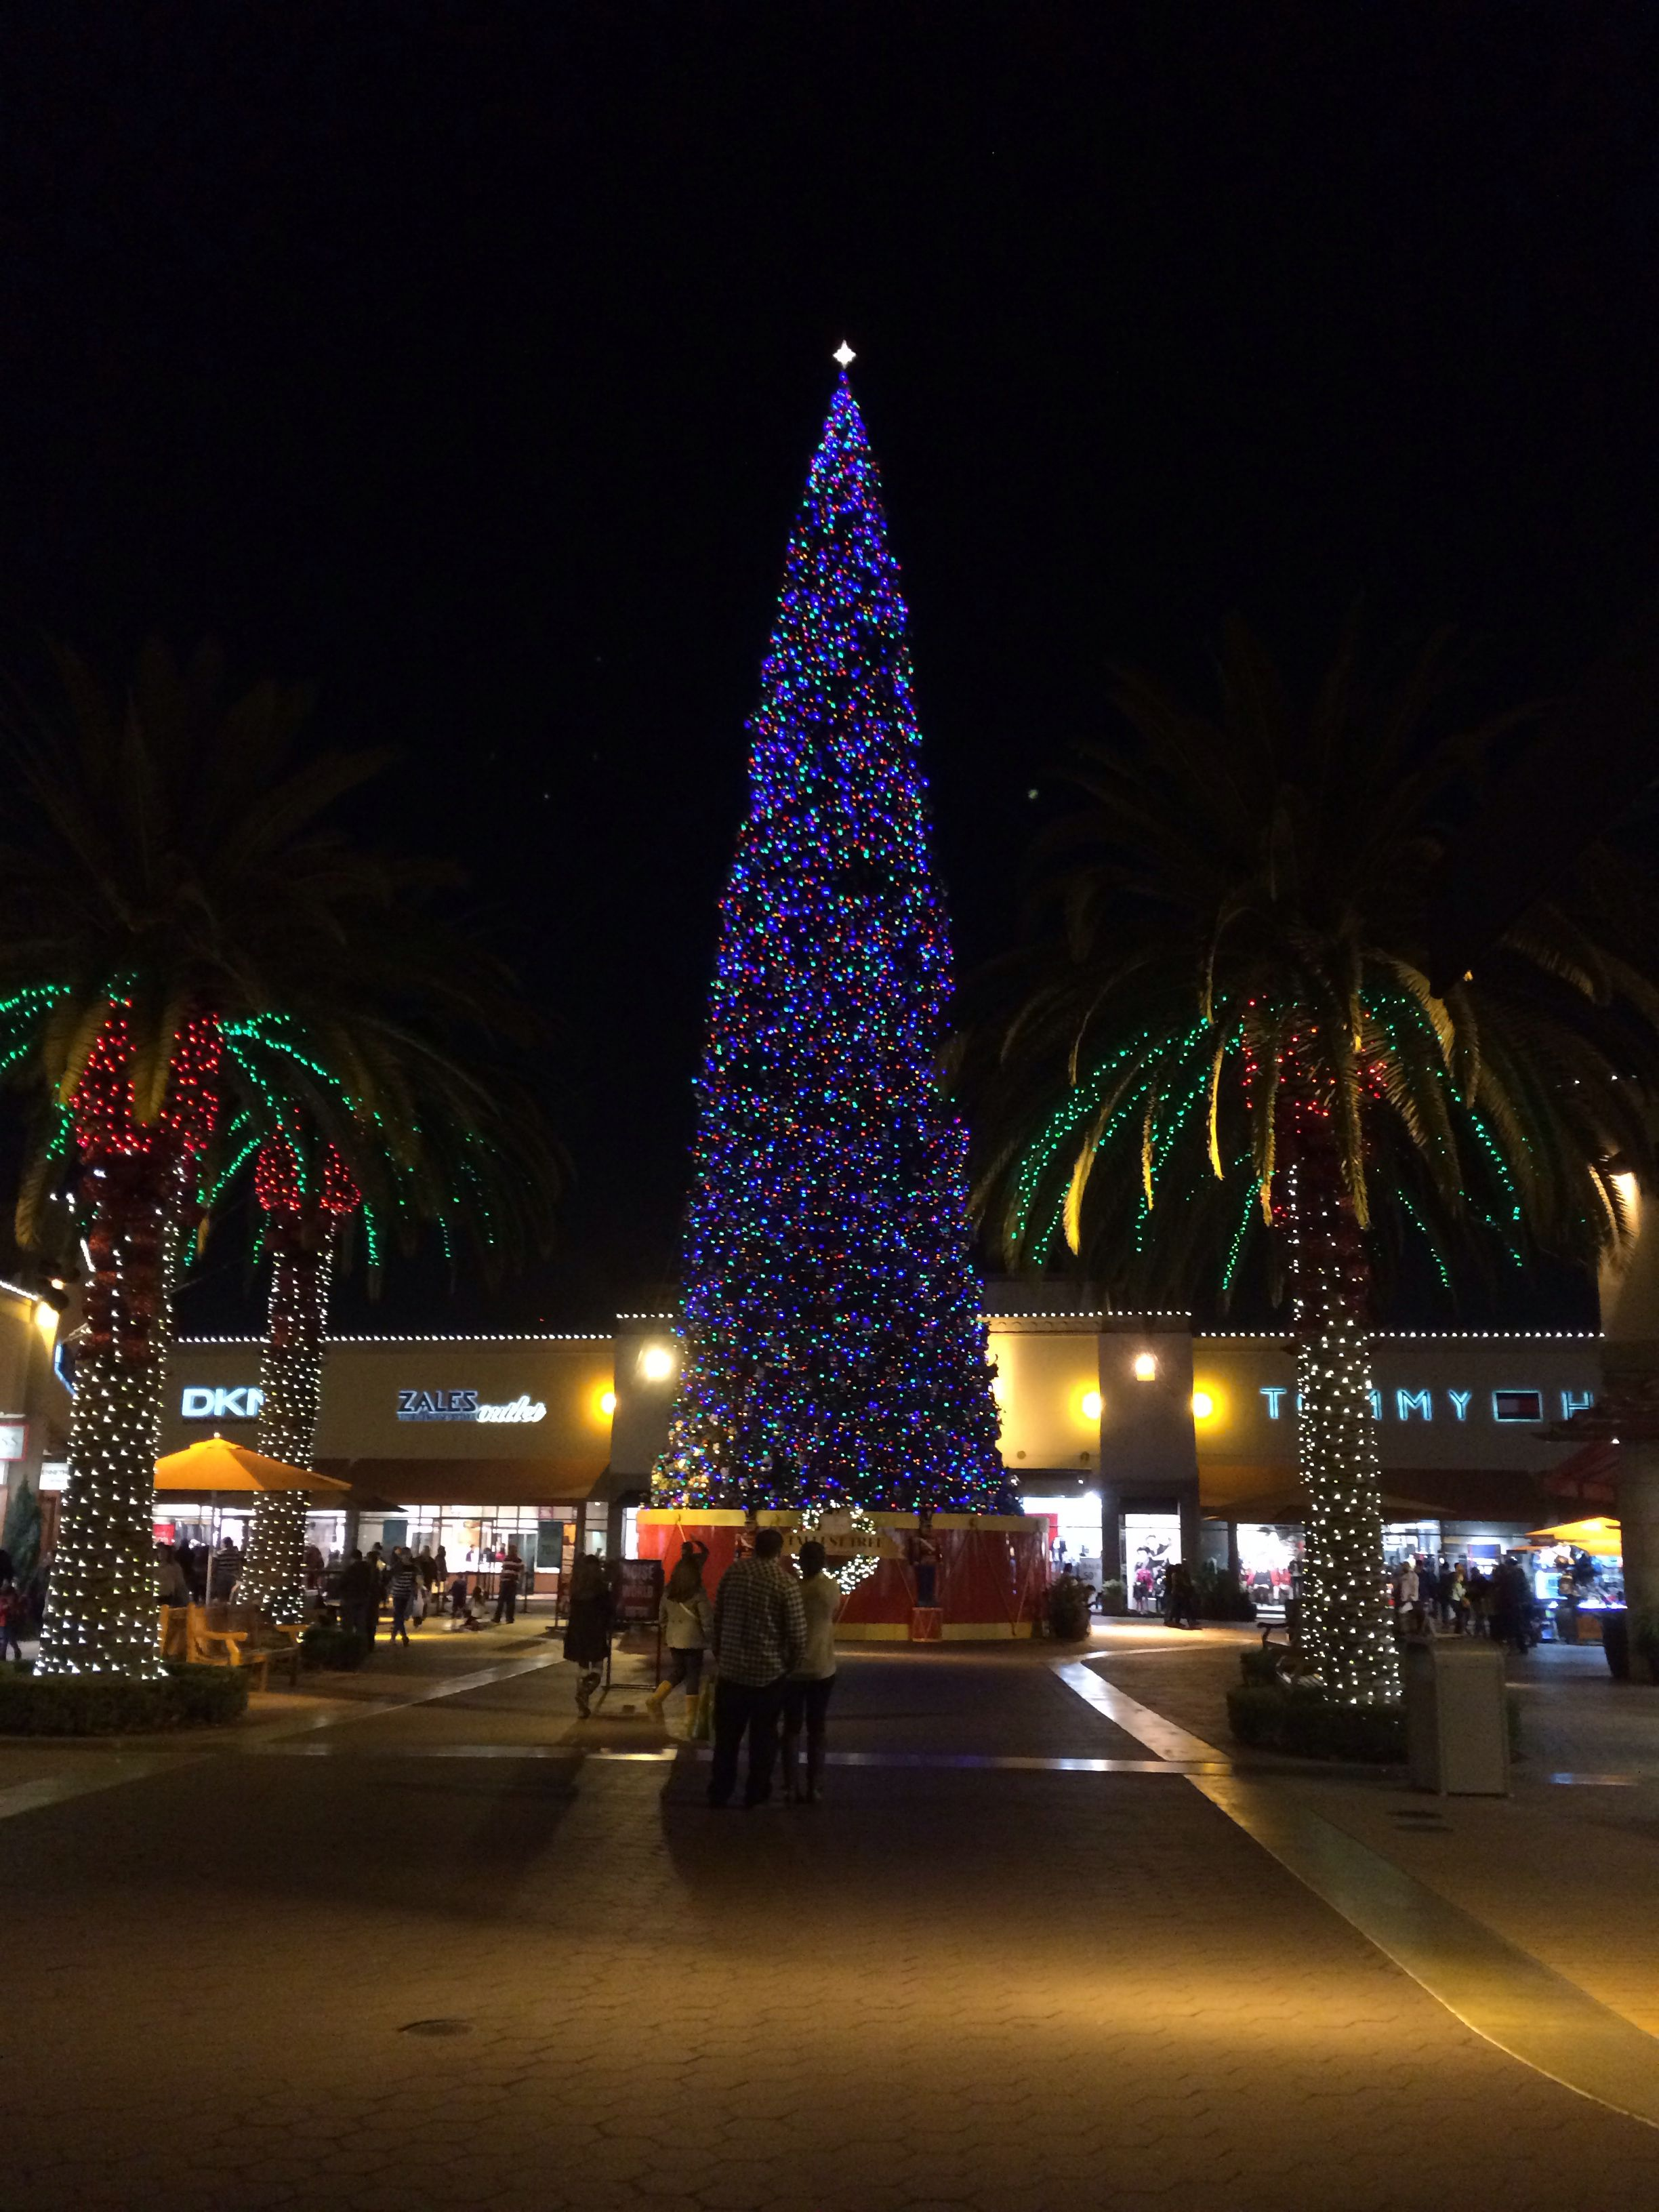 worlds tallest christmas tree citadel outlets las choice for outlet shopping - Worlds Tallest Christmas Tree